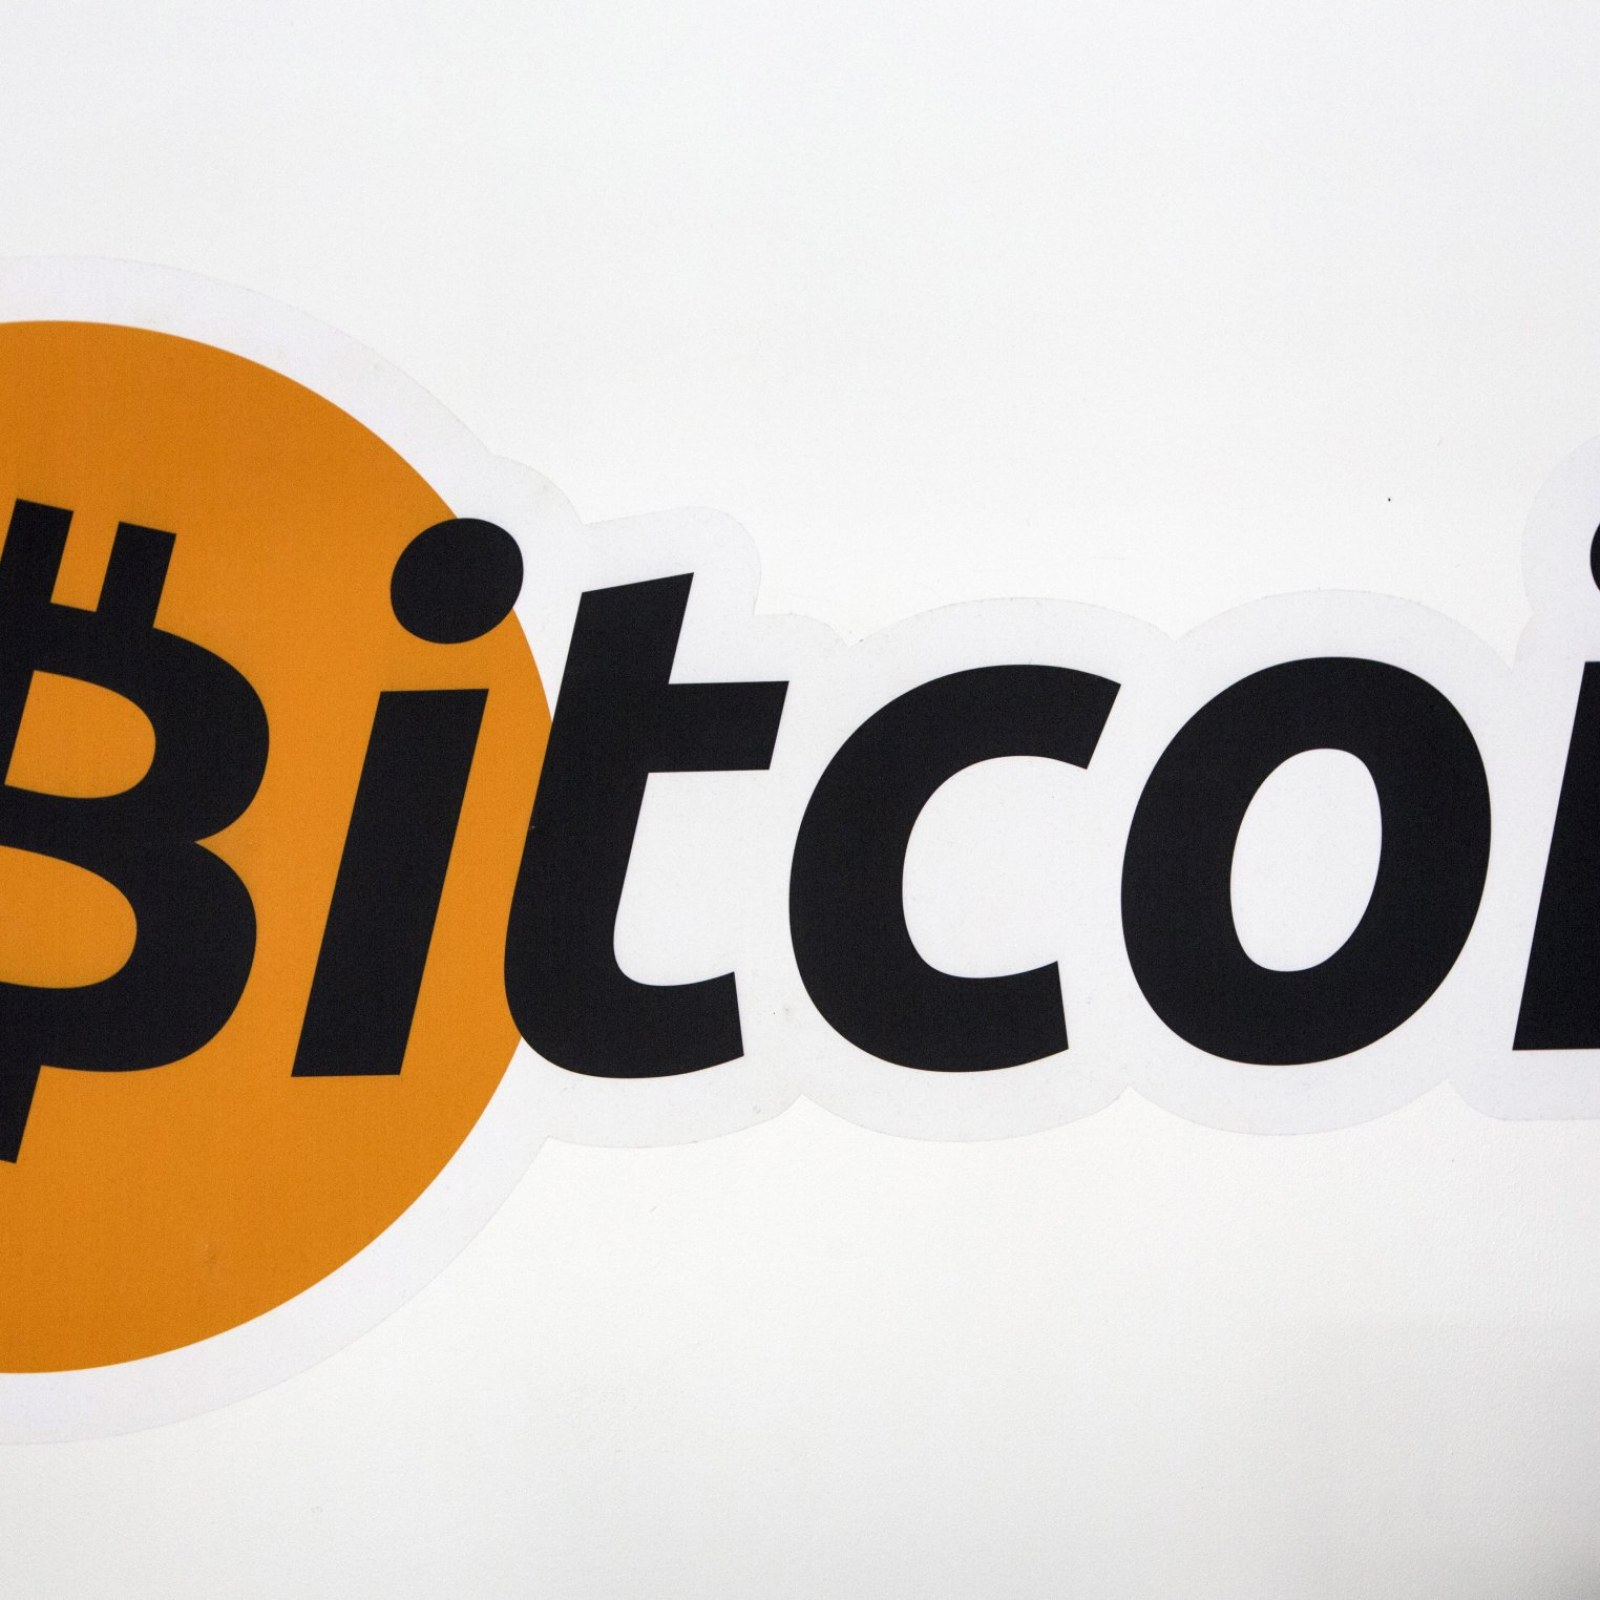 Australia To Auction 11 5 Million Of Confiscated Bitcoin